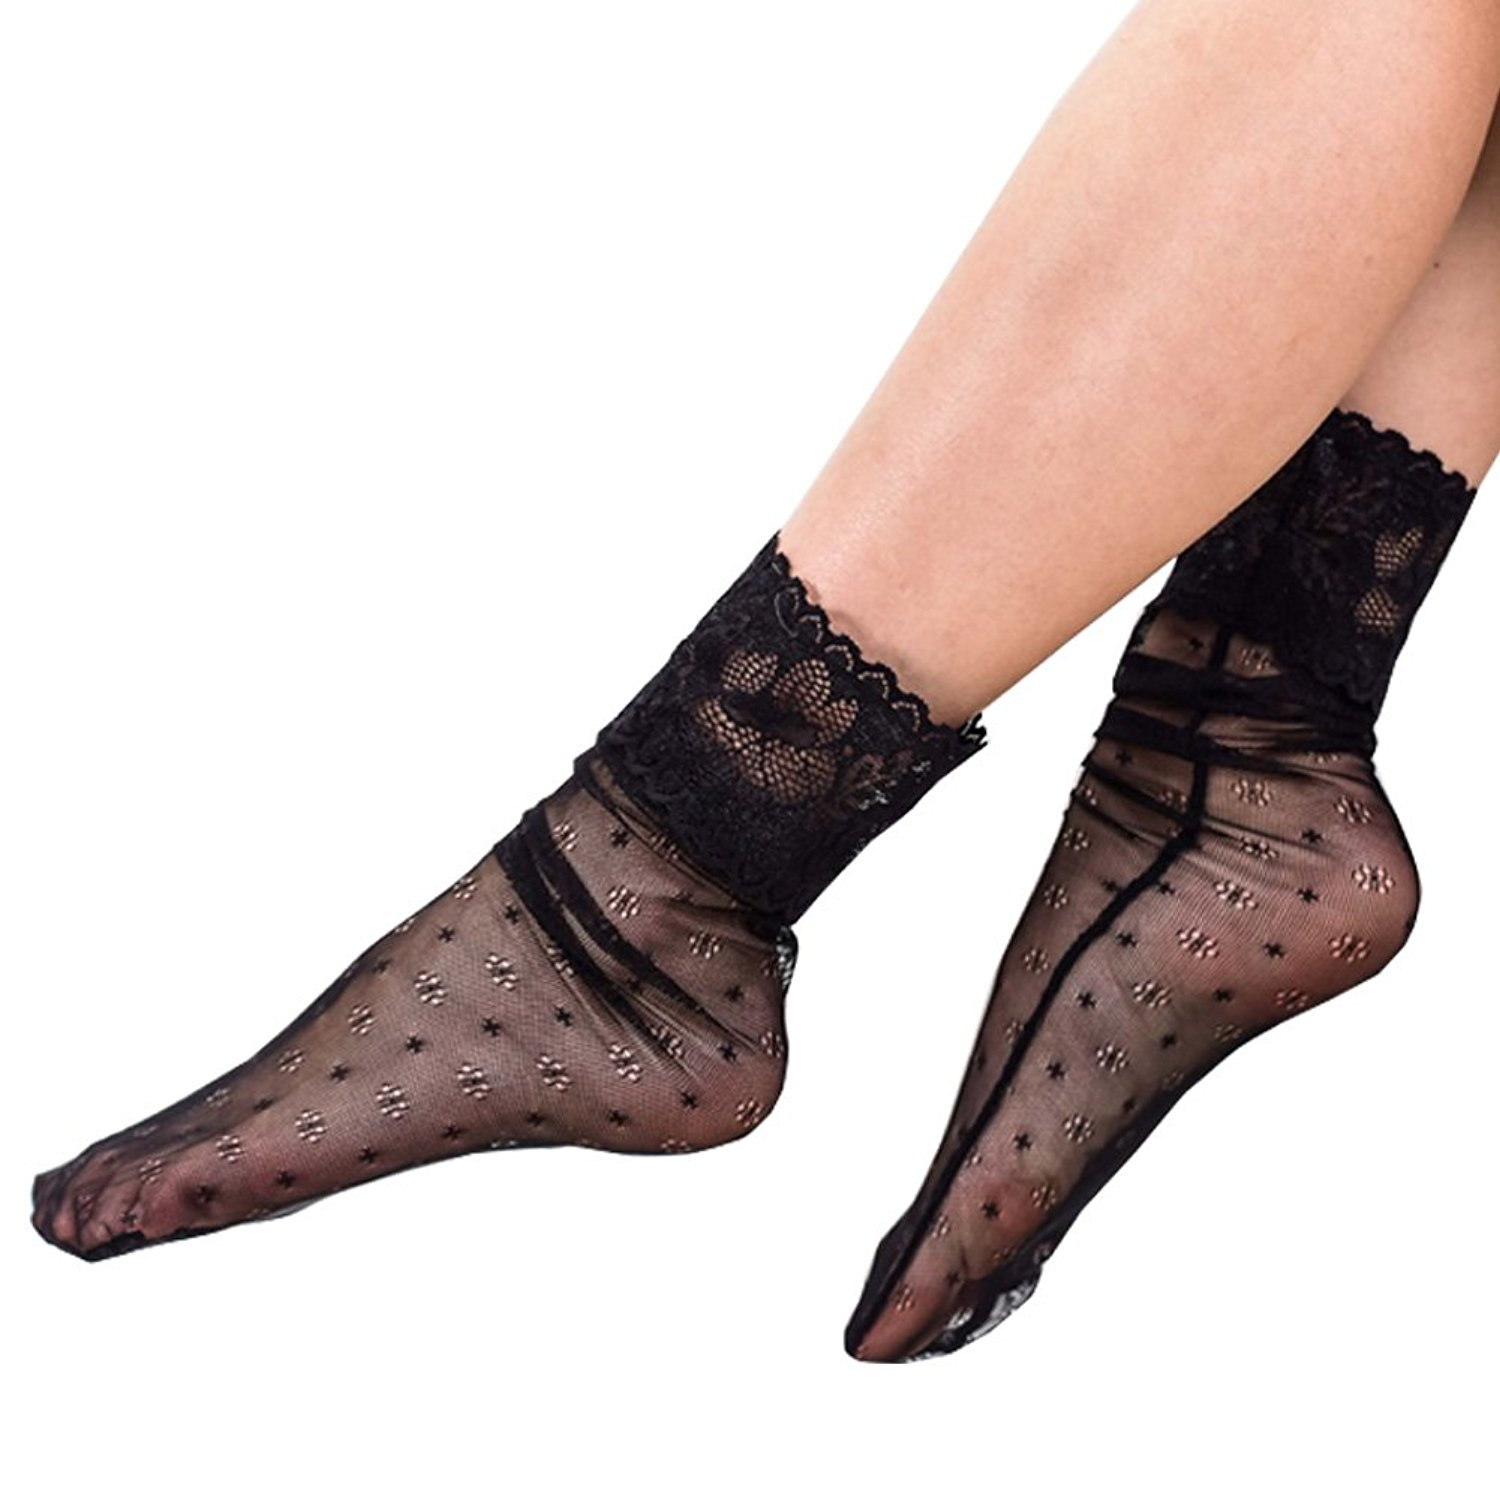 10fa341dbf0 Get Quotations · MEJORMEN Sheer Slouch Lace Socks Black Ruffles Dress Socks